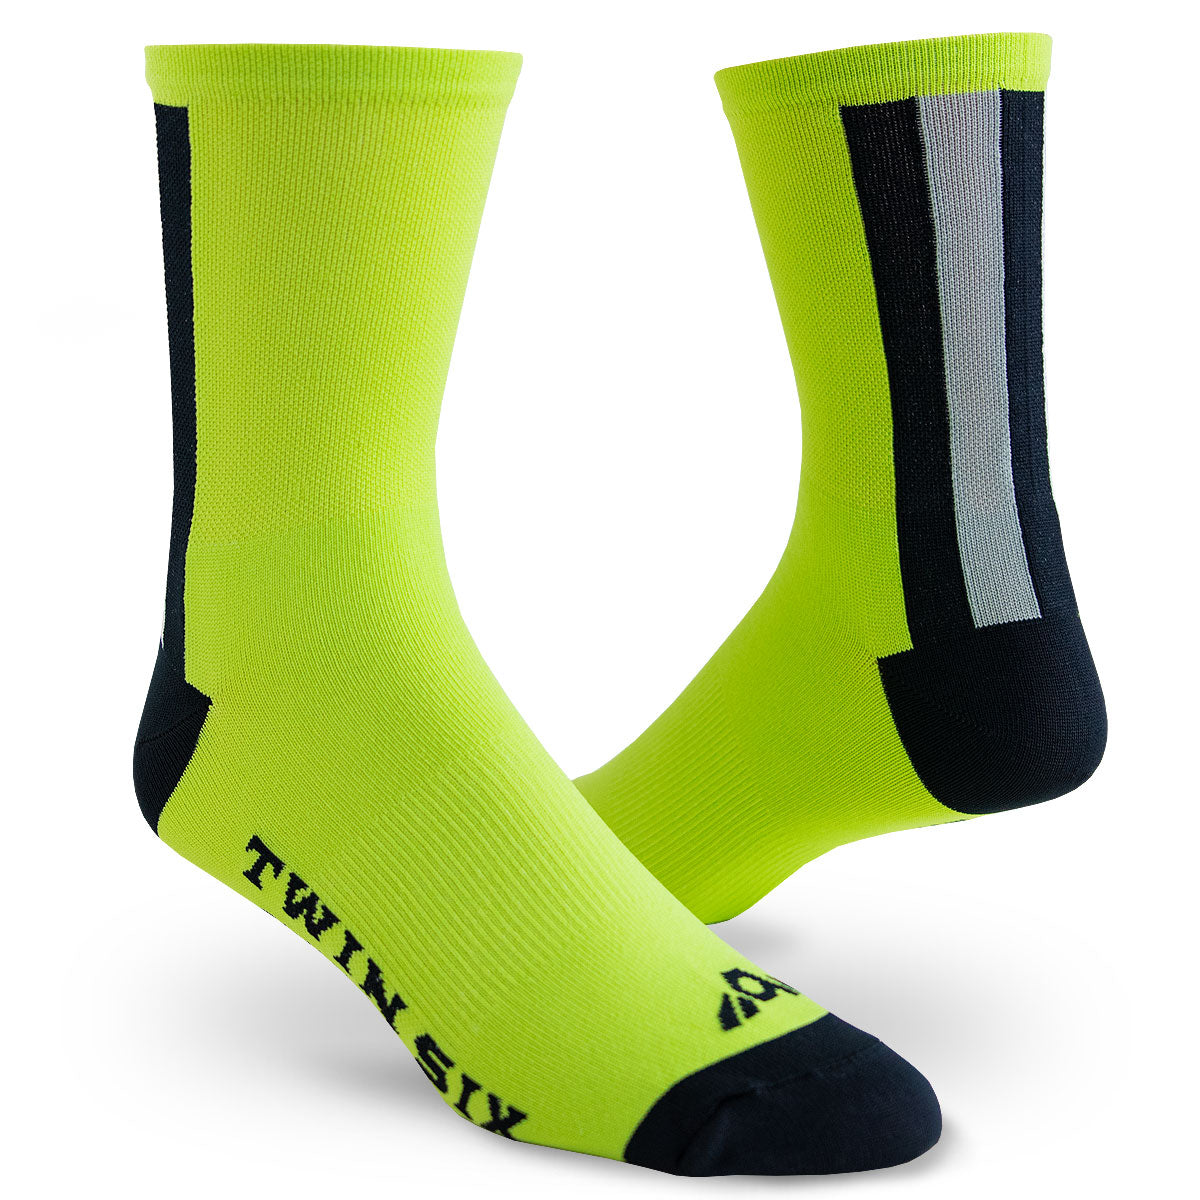 Mach 6 (YELLOW) Sock